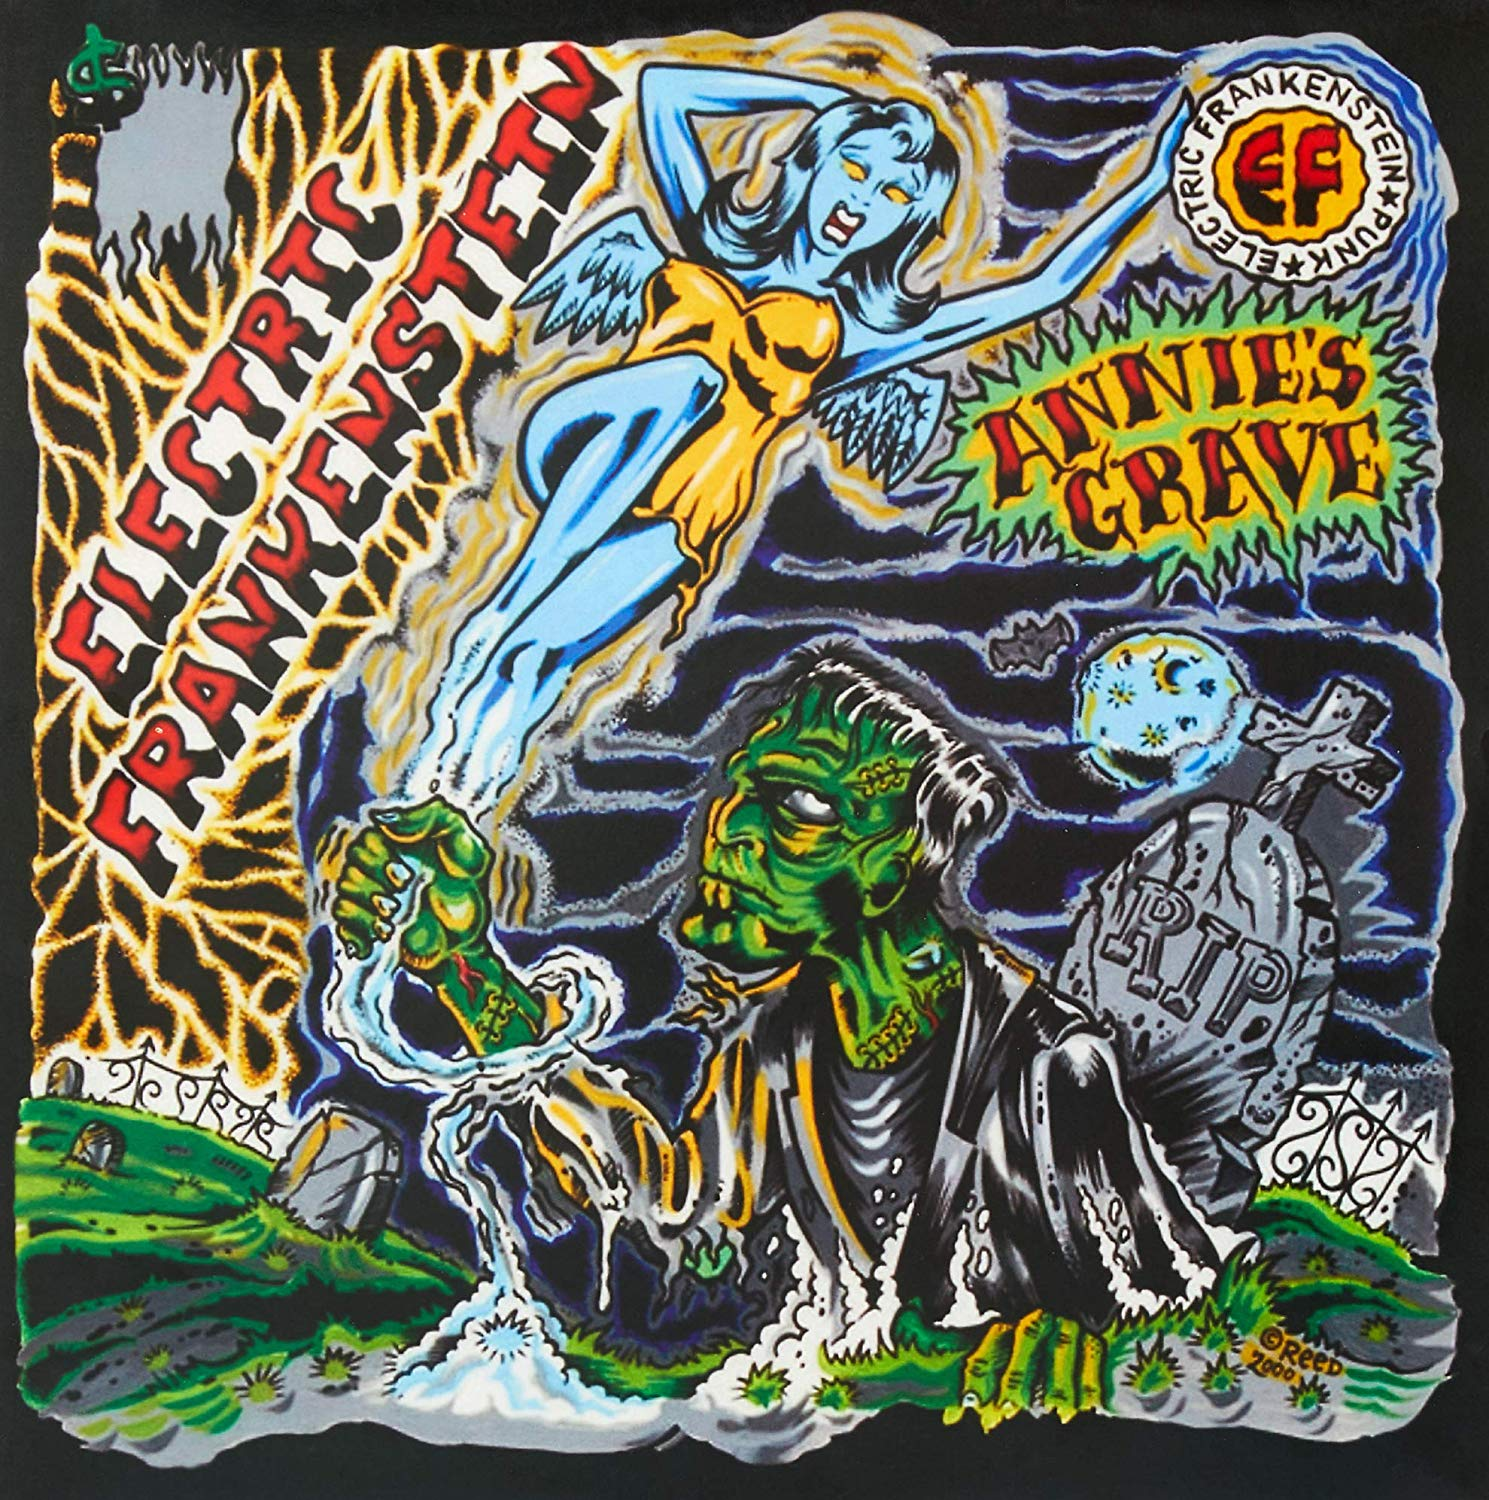 Annie's Grave - 8b. Annie's Grave(Victory Records - USA 2001)OUT OF PRINTDifferent version ofDon't Touch Mealbum same songs except has live version of Perfect Crime and videos of Hate Machine and Already Dead instead of Clash, Girlschool, and Red Noise covers.